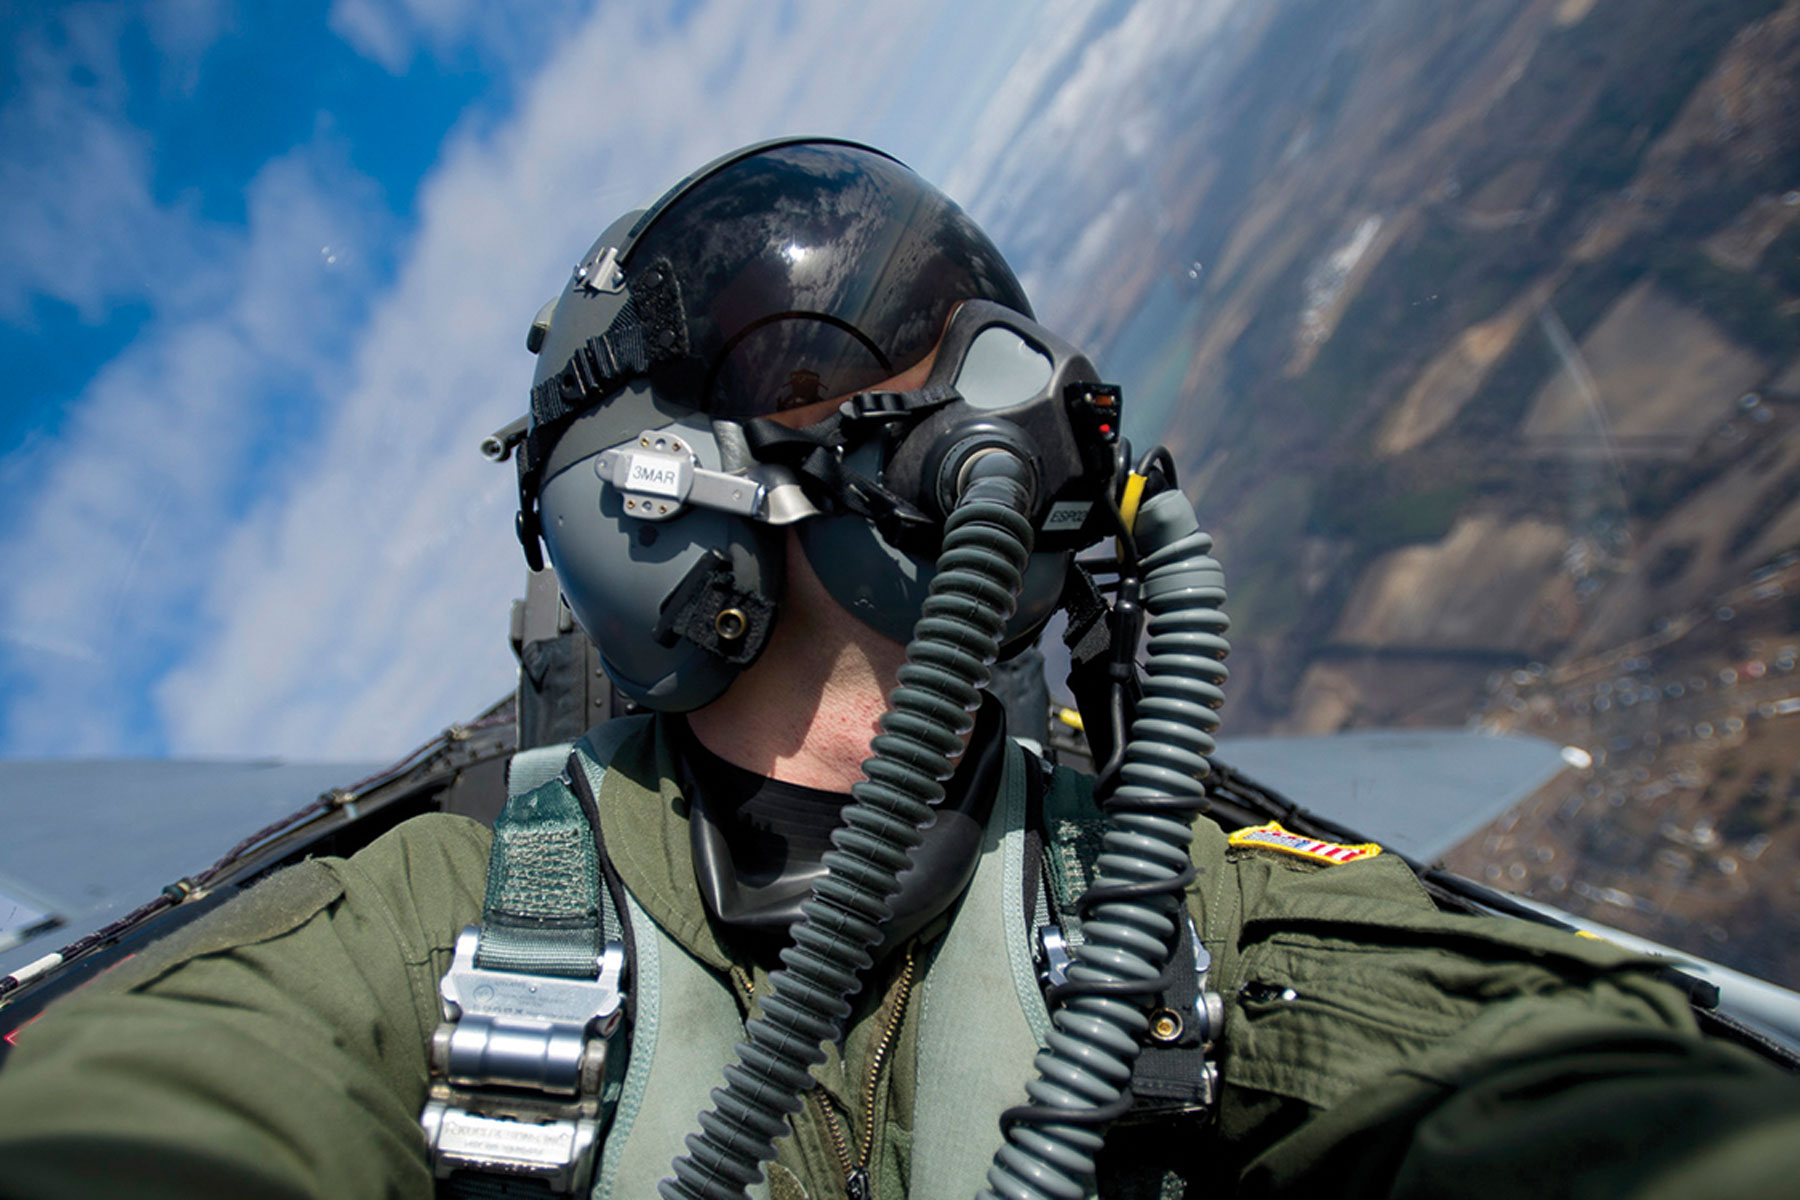 Cobham Gets Pentagon Contract to Develop Pilot Life Support System